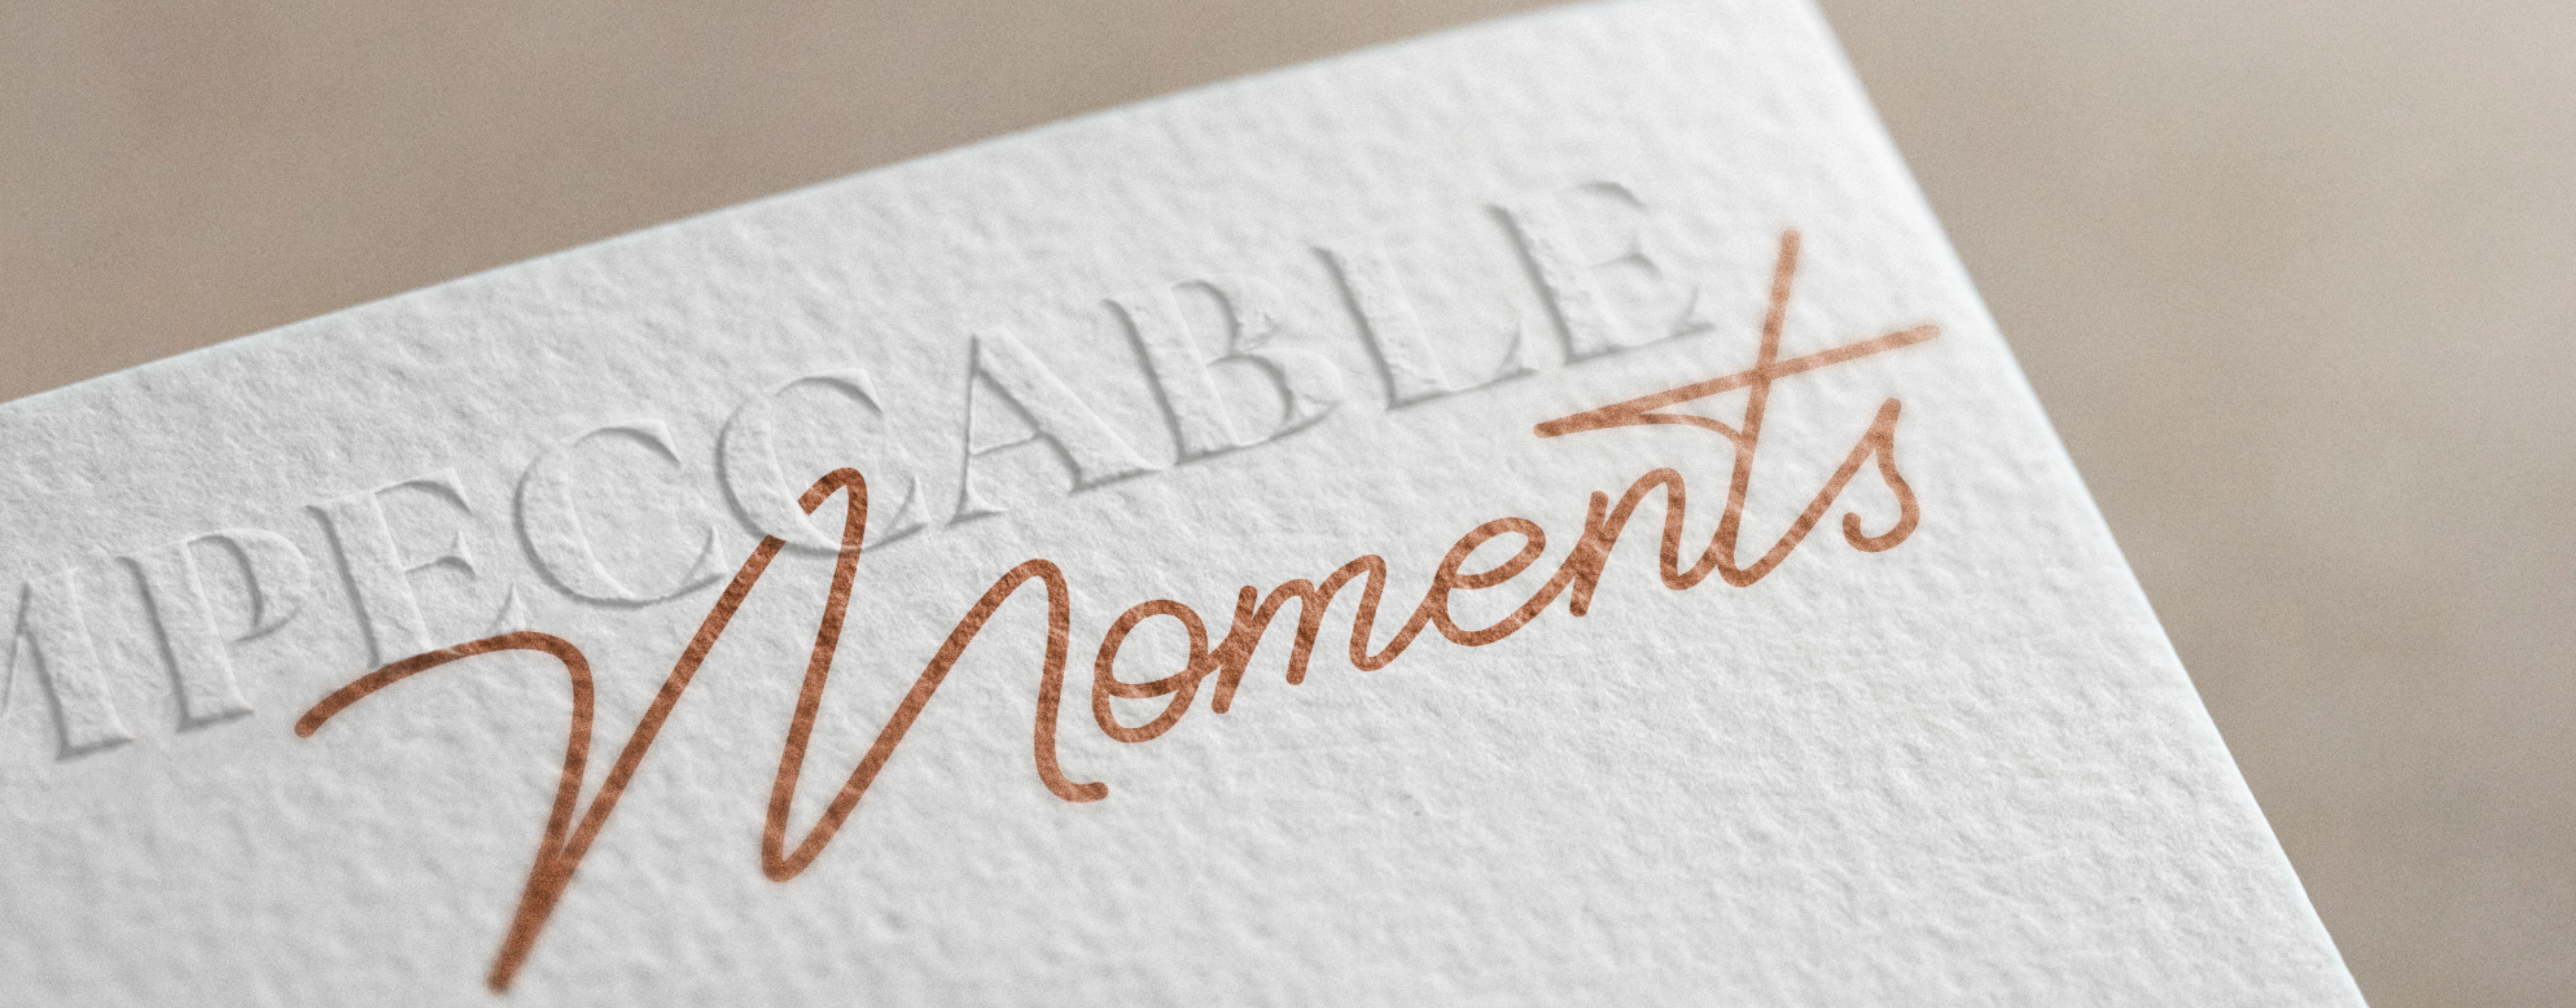 Impeccable Moments logo